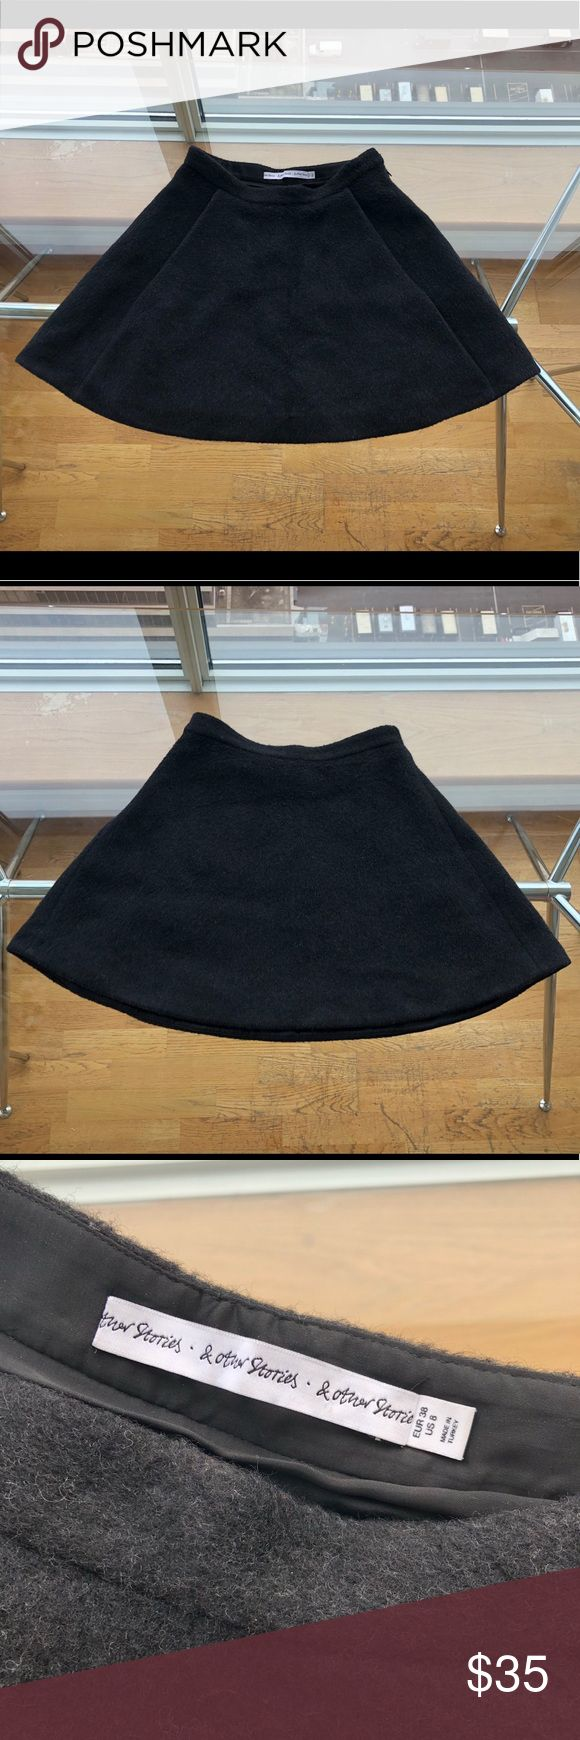 &other stories skirt Warm and stylish &other story black skirt with two hidden pockets in front 🌸 Been worn just 2-3 times. Fabric: 63% Wool, 29% Polyamide, 4% Mohair, 4% Polyester & Other Stories Skirts Mini